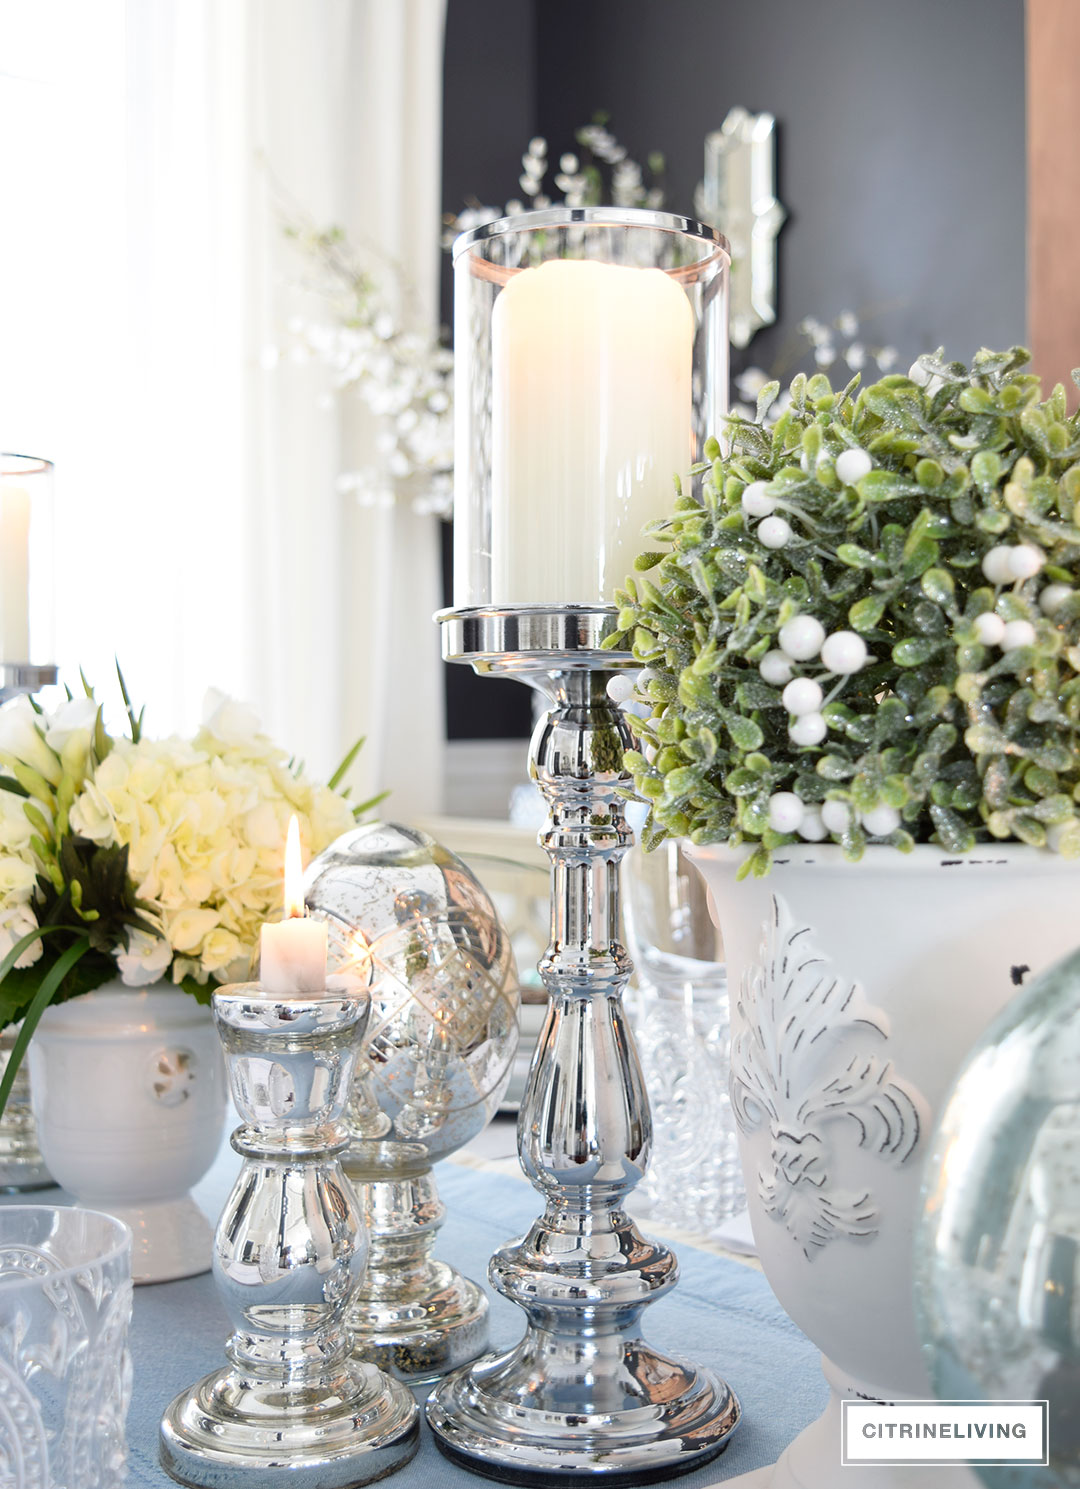 Silver candleholders, mercury glass accessories and topiaries are the perfect mix for and elgegant Easter or Spring tablescape.